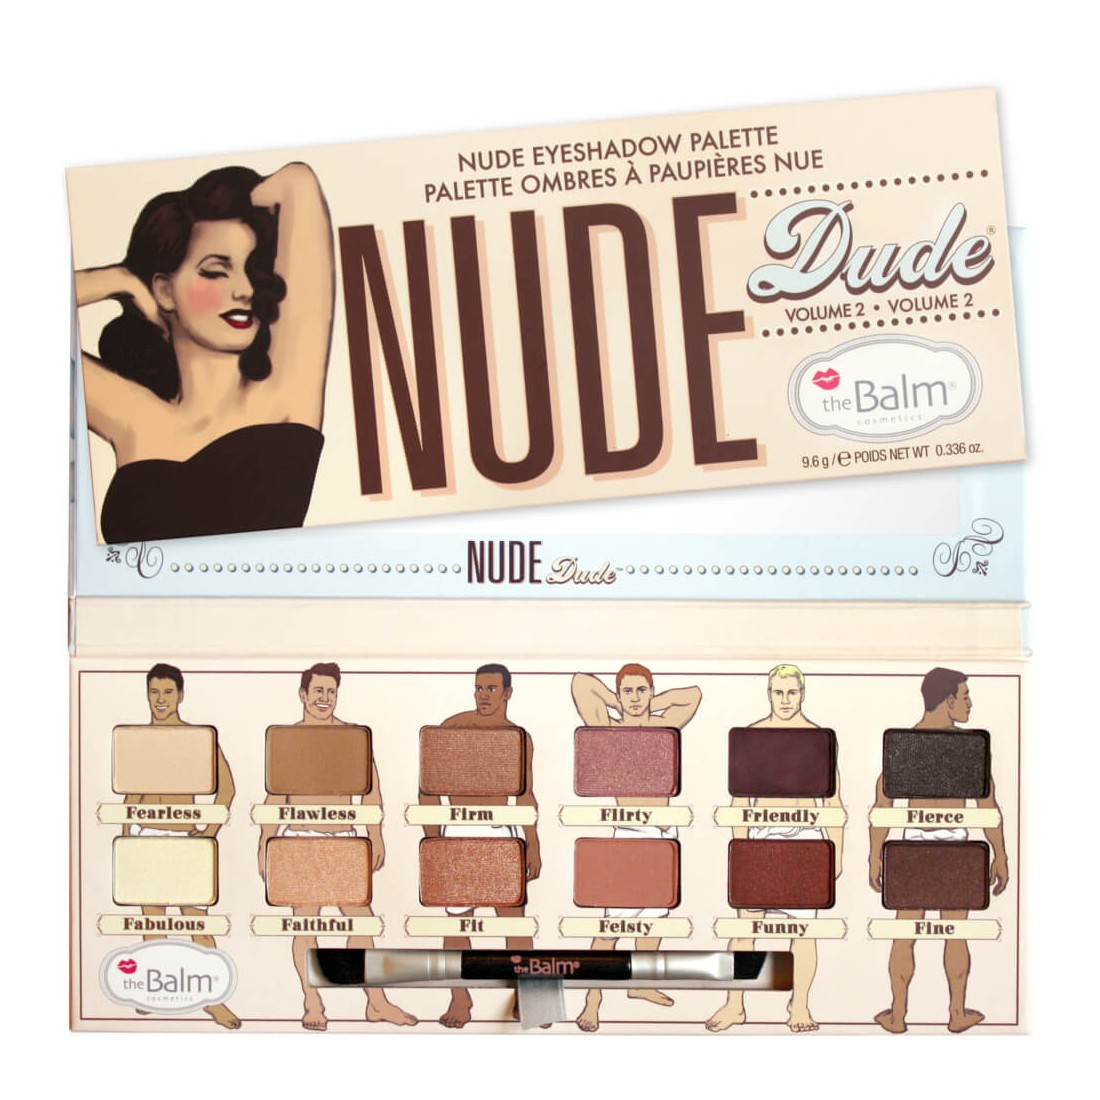 Nude dude eyeshadow palette 96g the balm